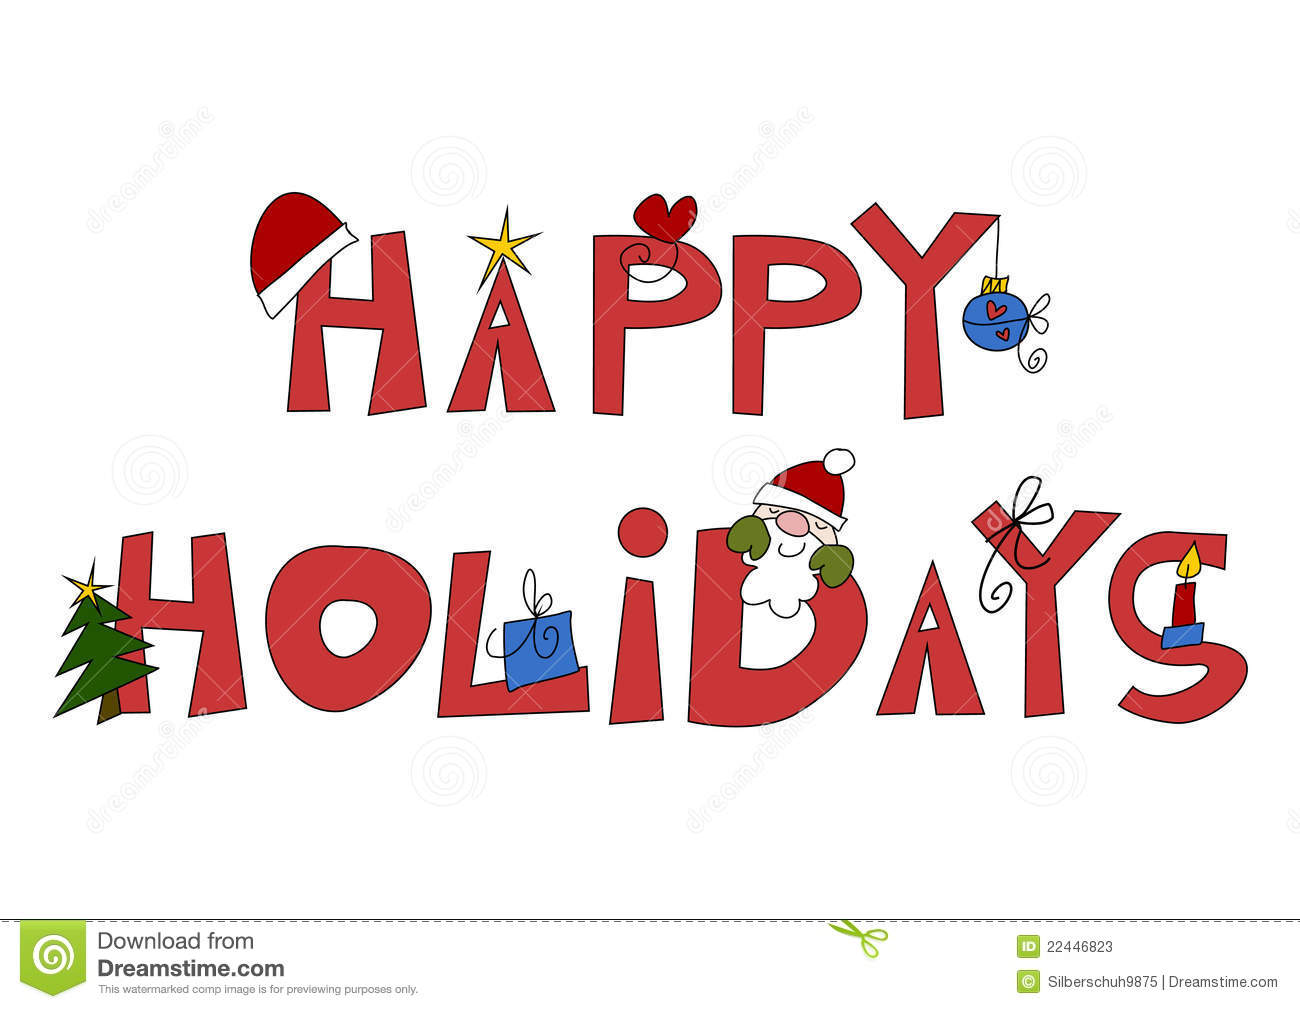 55 Most Beautiful Happy Holidays Wish Pictures.